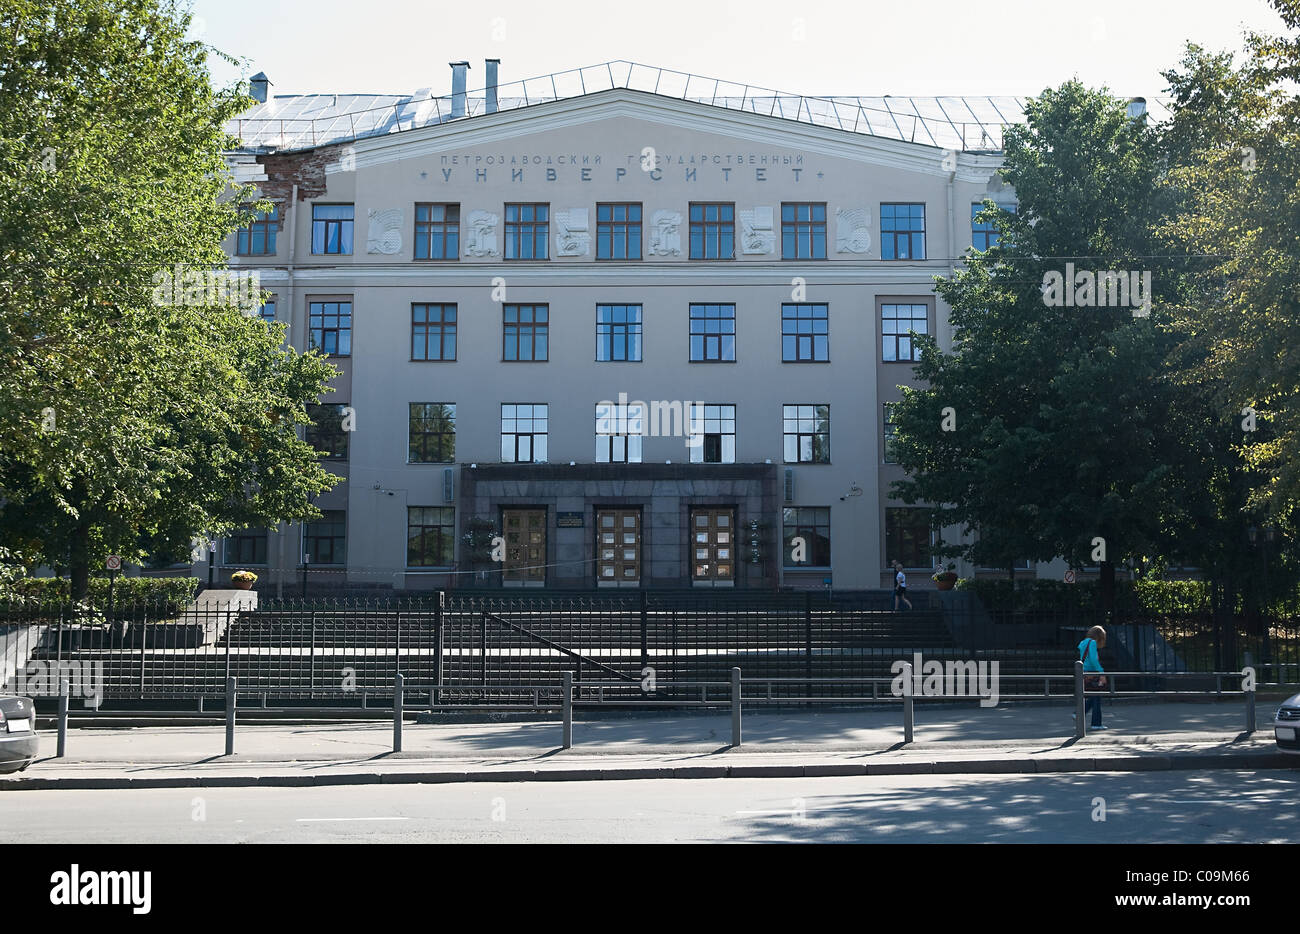 General education schools of the city of Beregovo: addresses and phone numbers